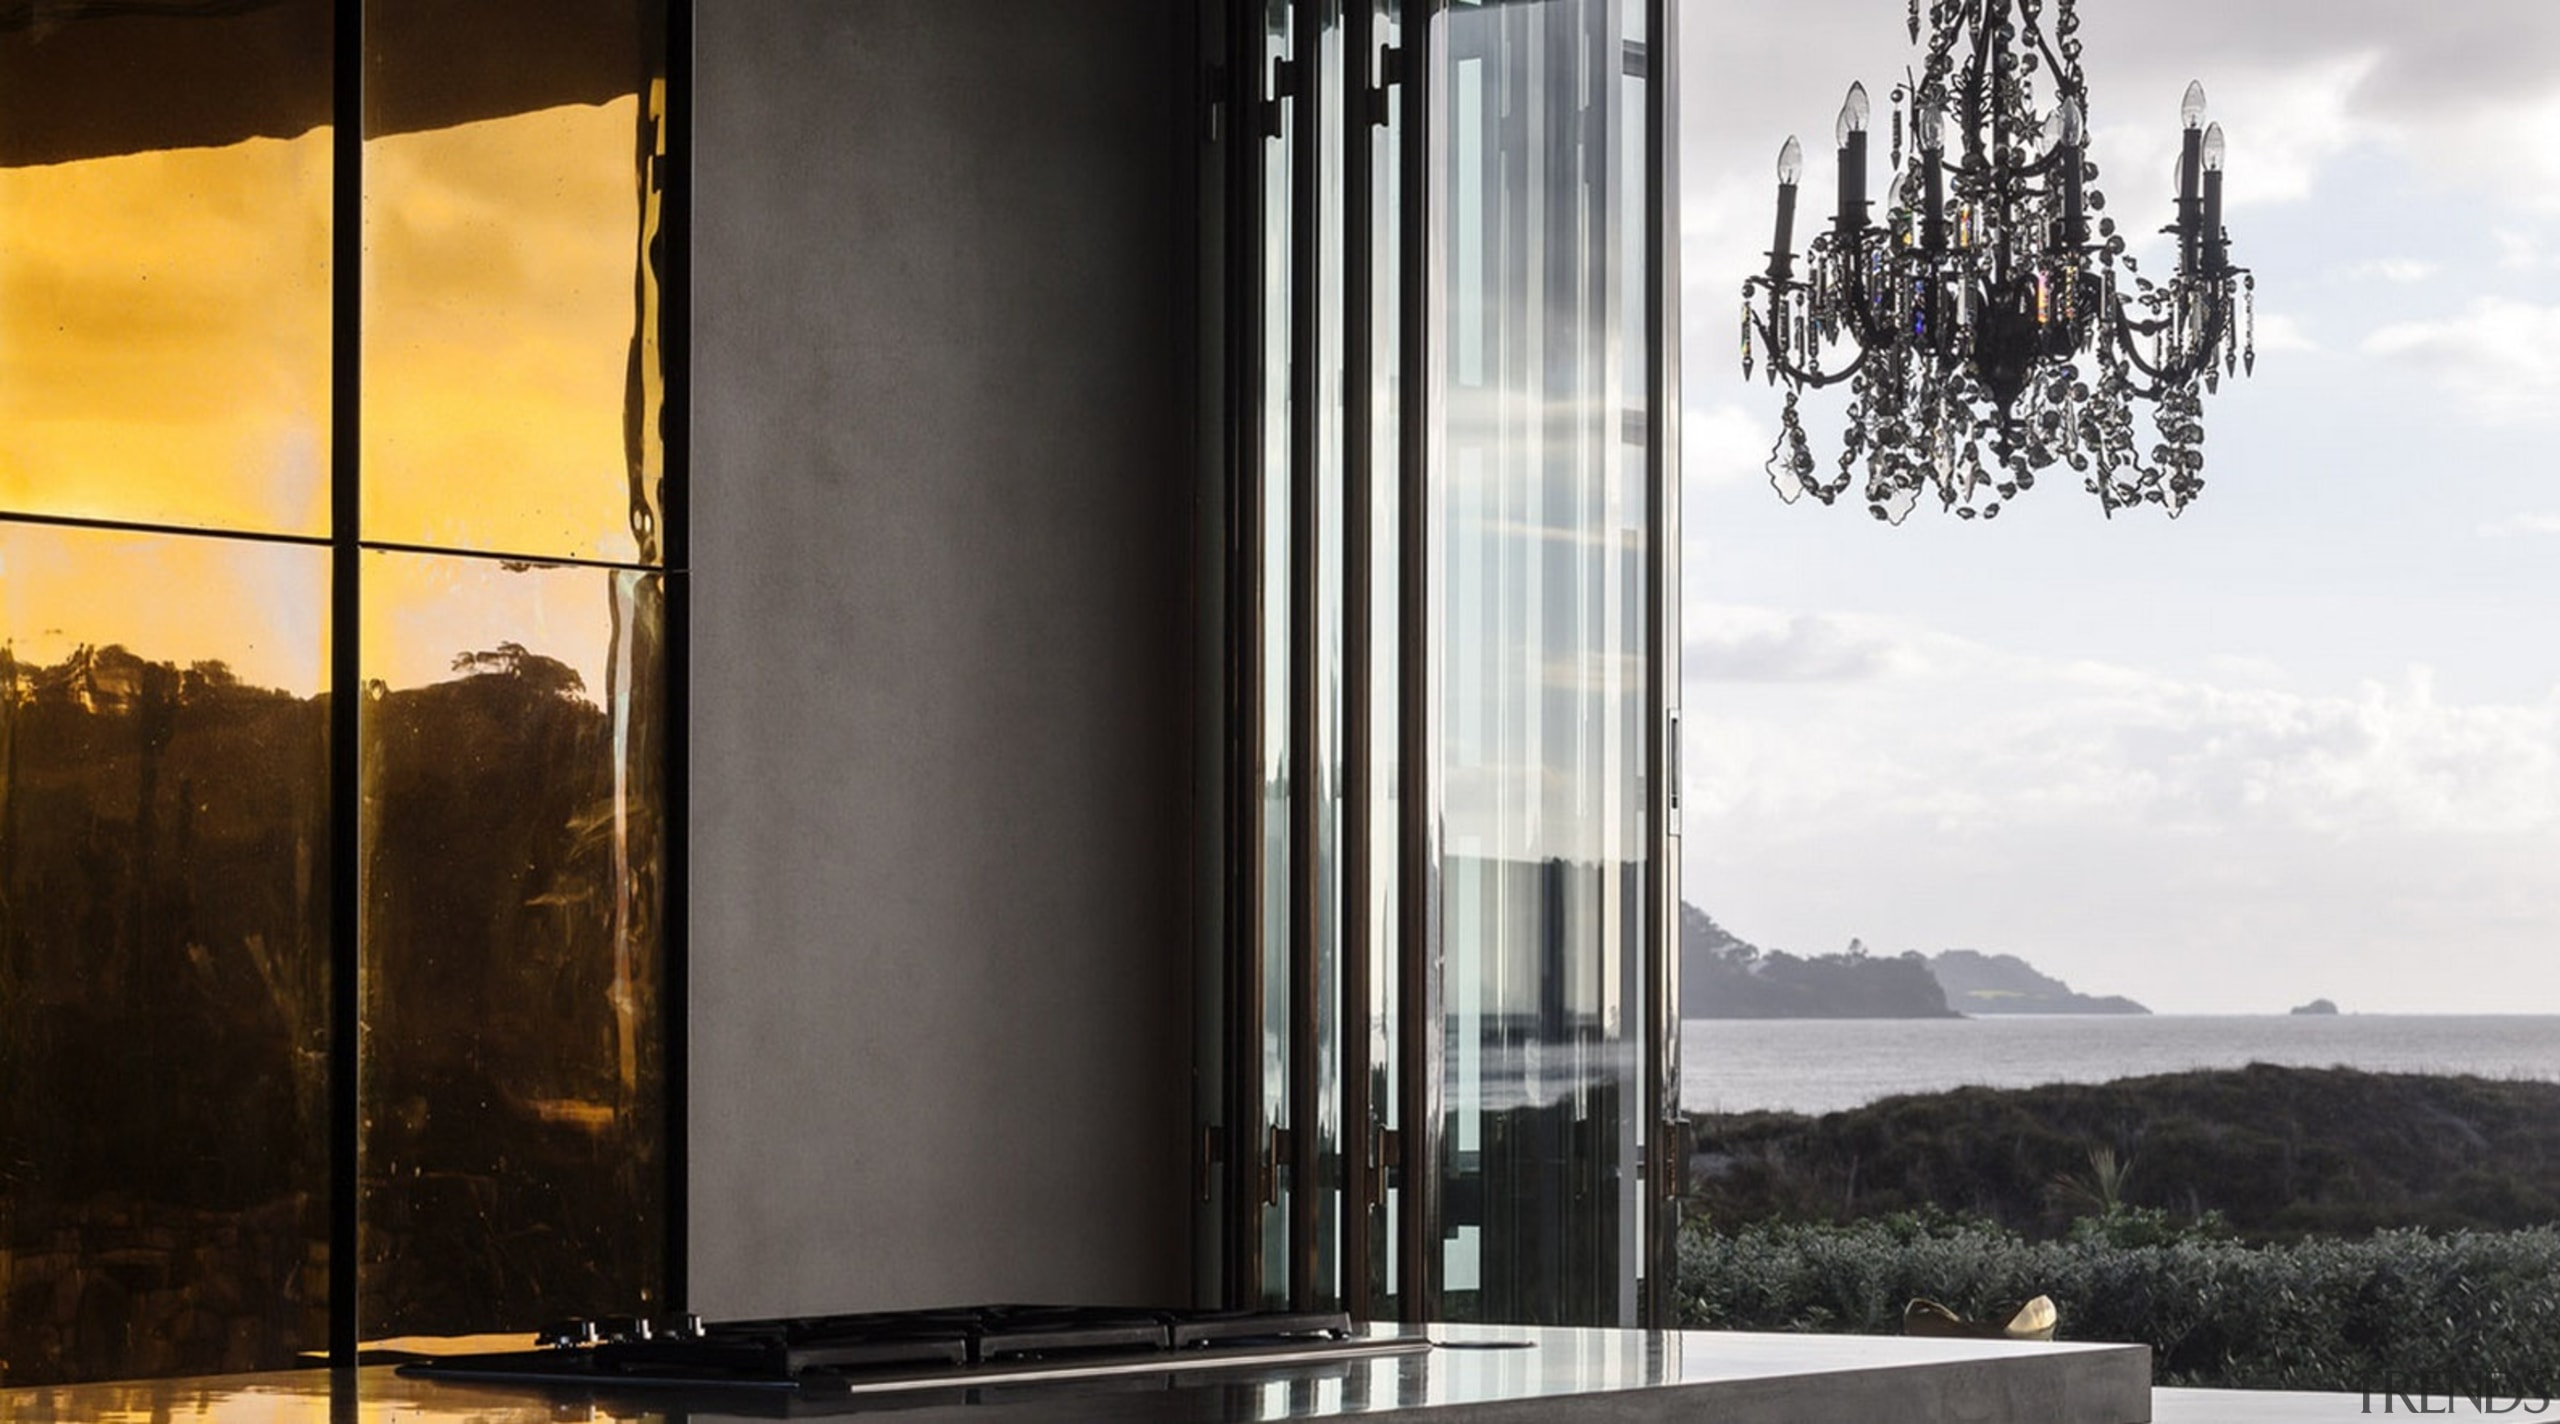 Winner of the Villa Category at the World building, glass, lighting, reflection, sky, window, black, white